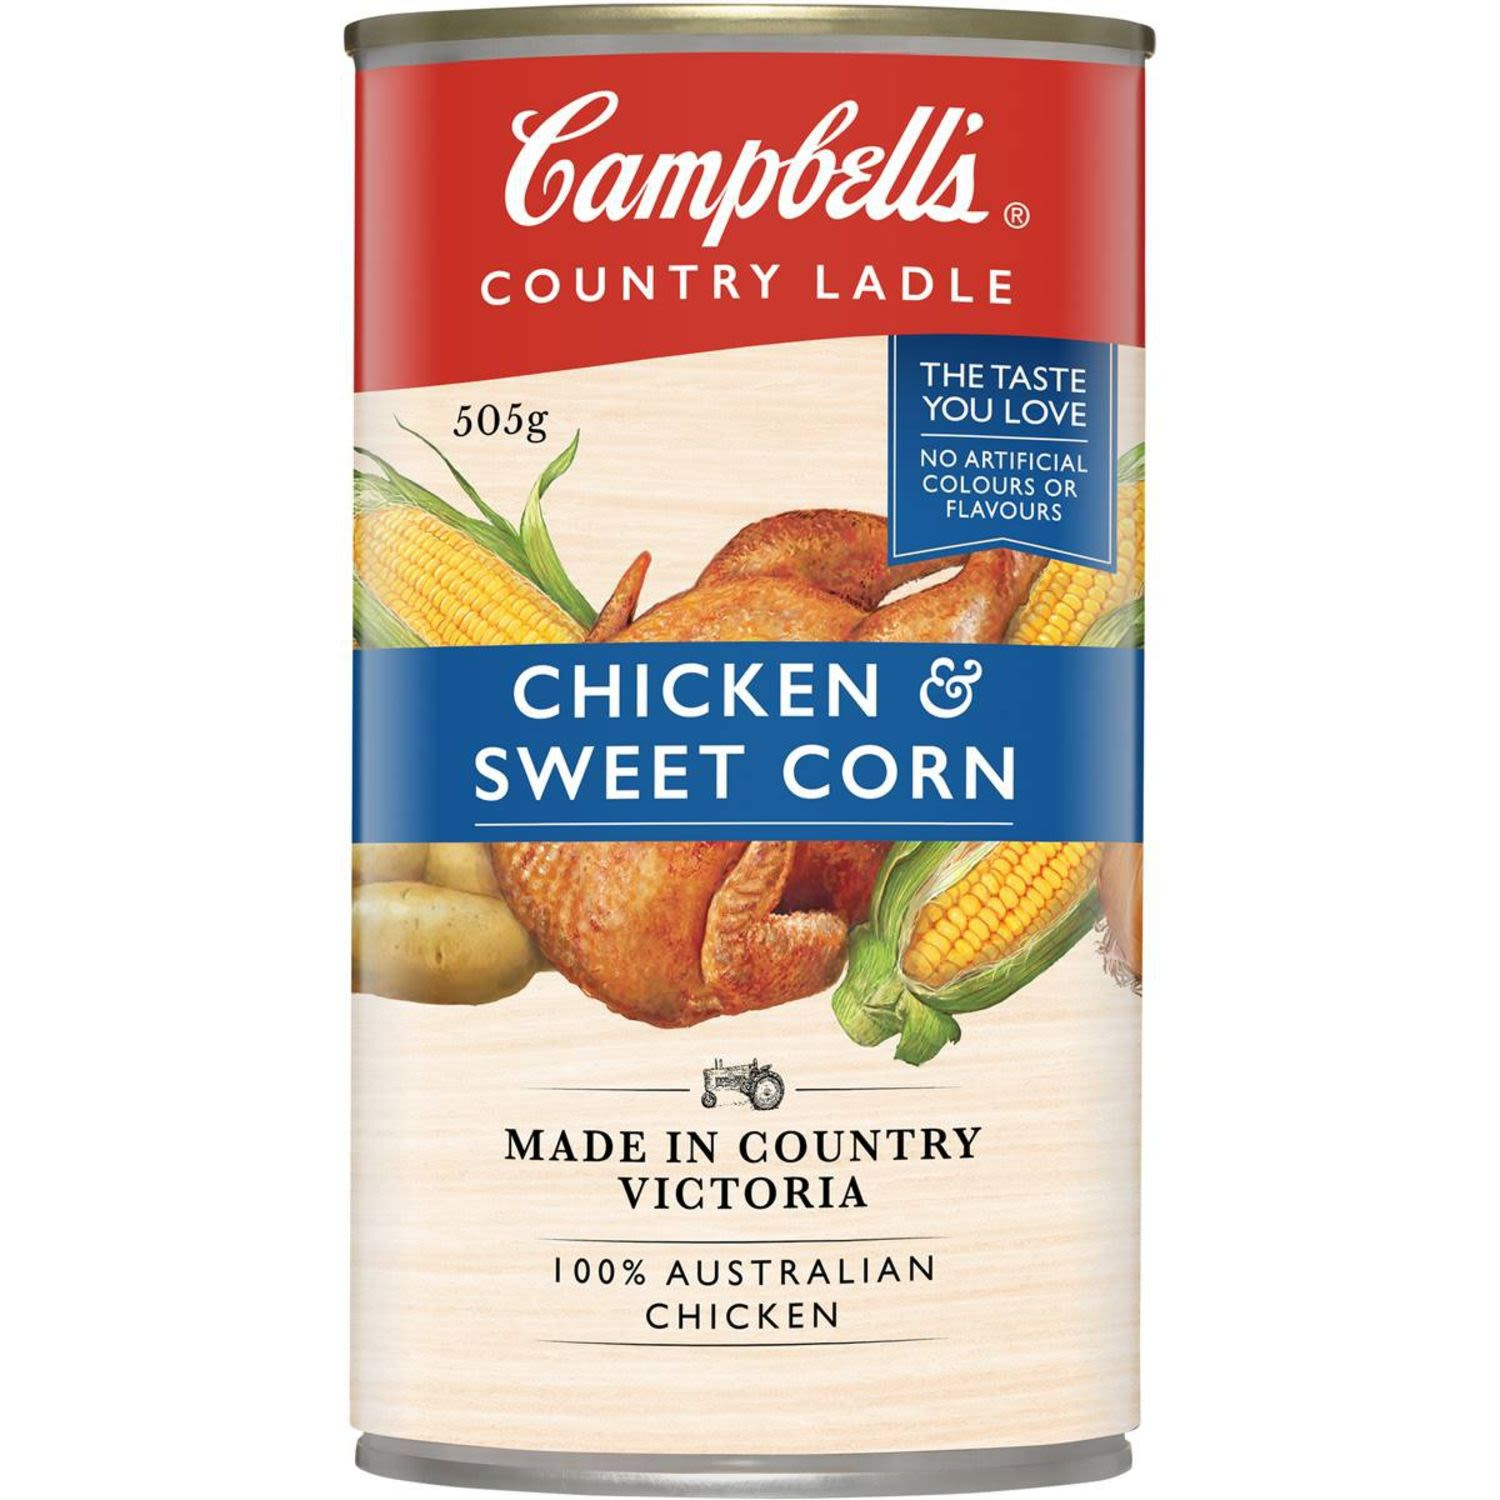 Campbell's Country Ladle Canned Soup Chicken & Sweet Corn, 505 Gram